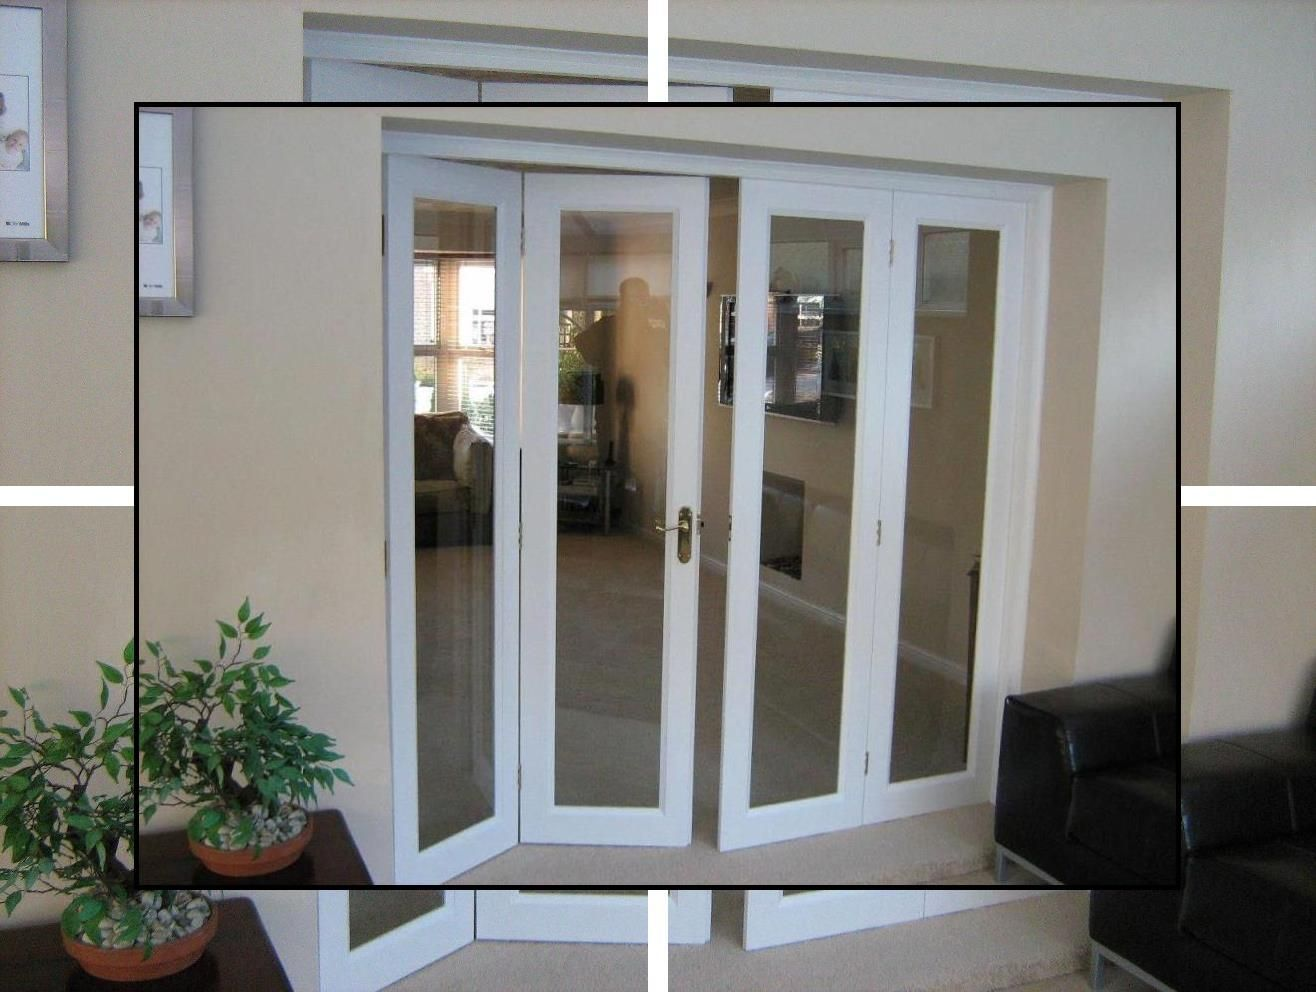 Interior Door Prices Patio Screen Door Double Bedroom Doors Oak Exterior Doors French Doors Interior Wooden French Doors